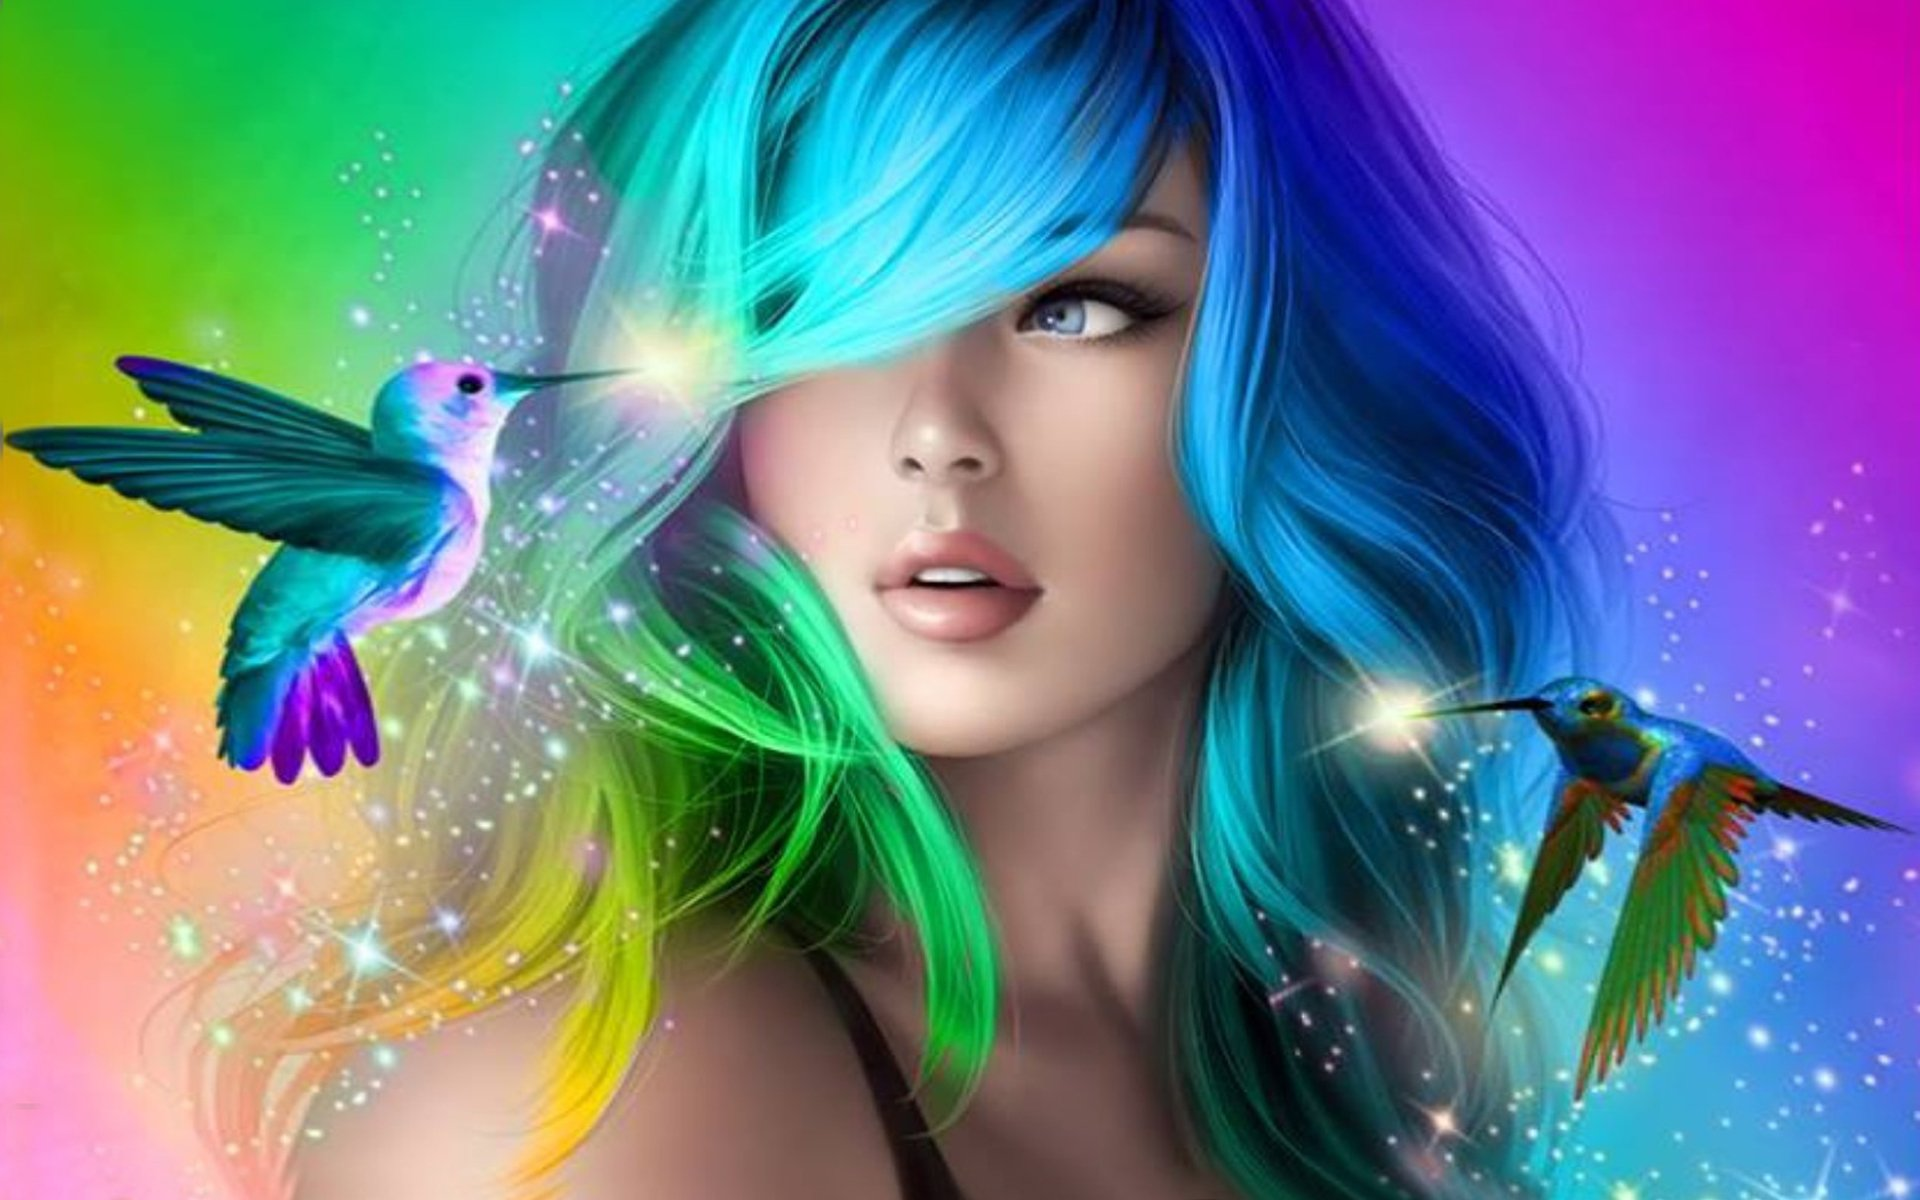 Artistic - Women  Woman Hair Colorful Blue Eyes Hummingbird Sparkles Blue Purple Wallpaper